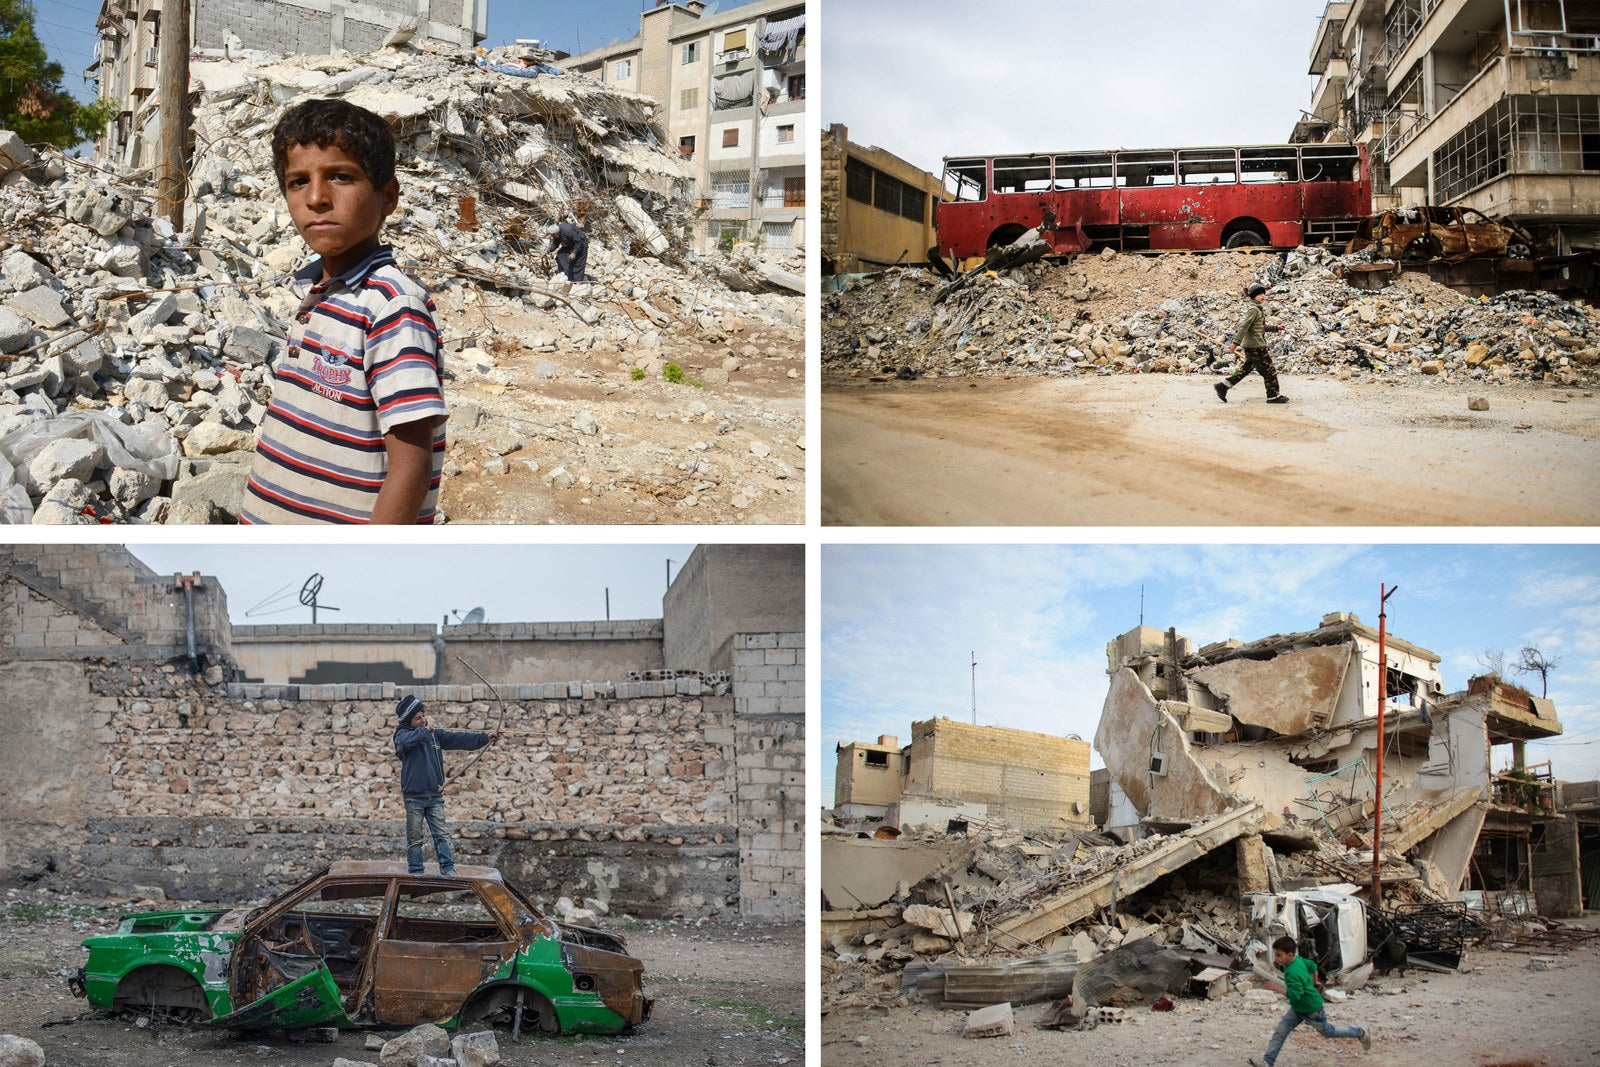 Top left, a boy walks past a building destroyed during fighting in Aleppo, 2012. Top right, A child spotted walking in the rubbles of Aleppo, 2014. Bottom left, a Syrian child in Aleppo, 2016. Bottom right, a Syrian boy runs past a destroyed building in Douma, 2018.